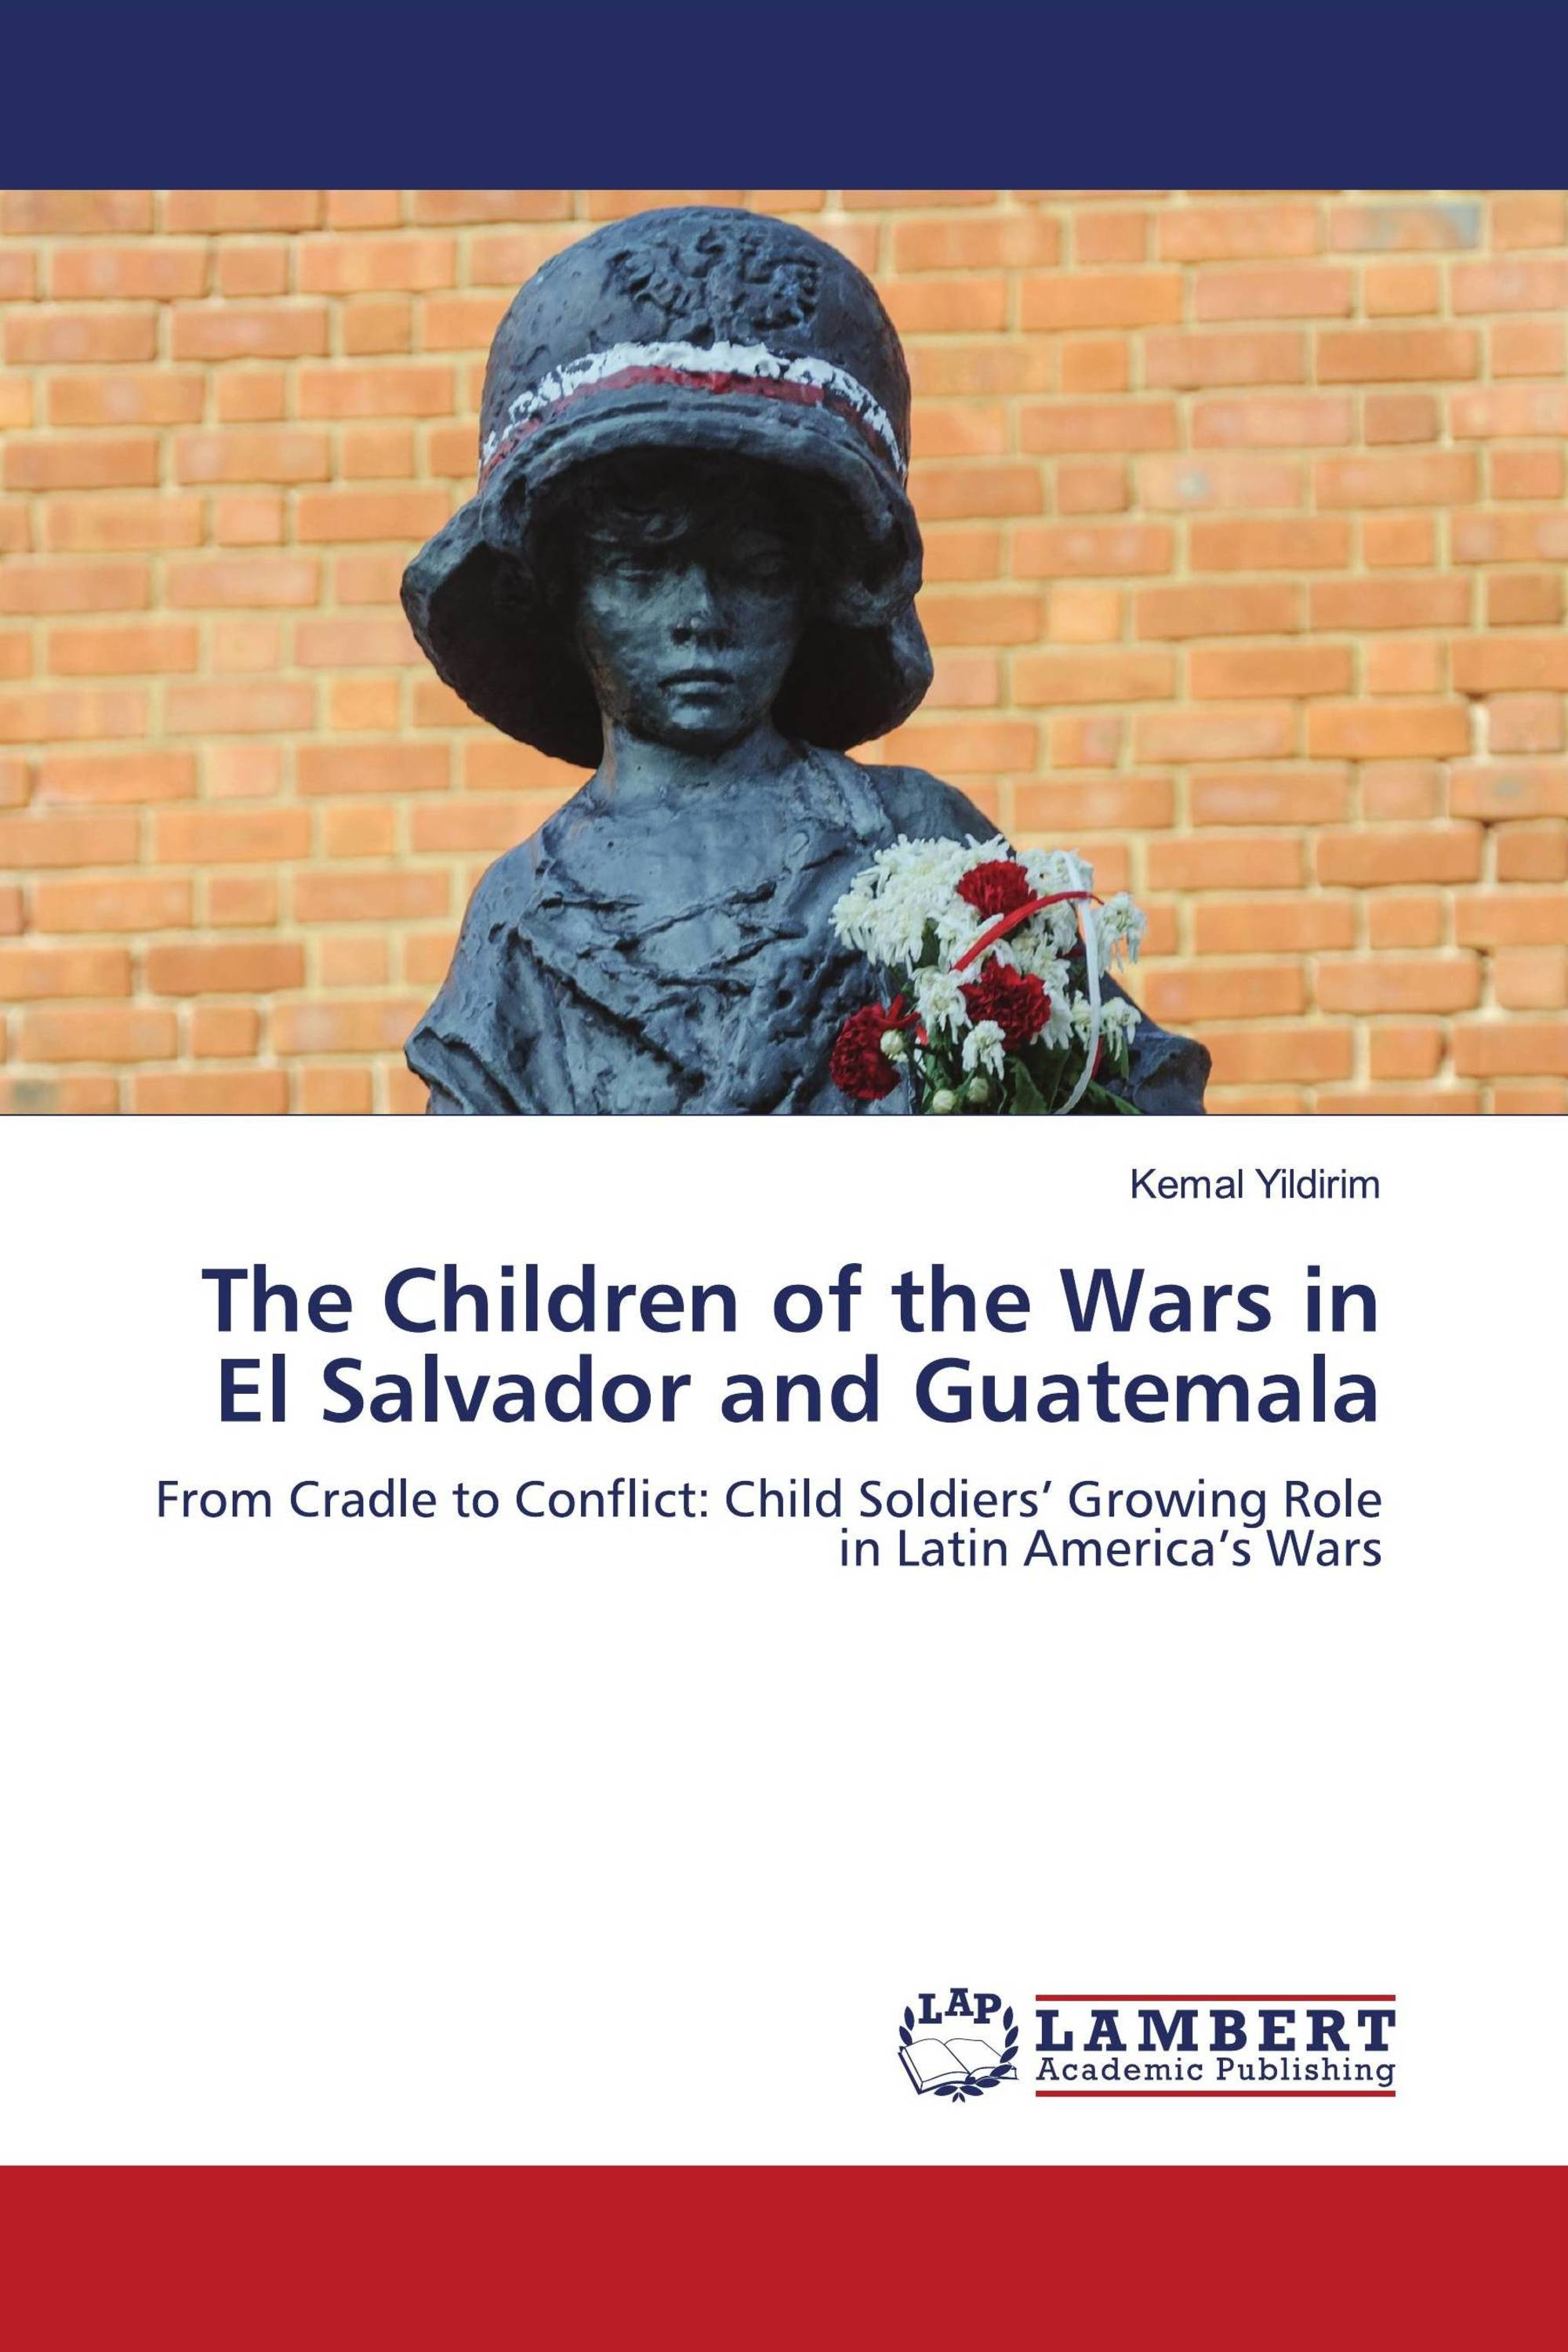 The Children of the Wars in El Salvador and Guatemala